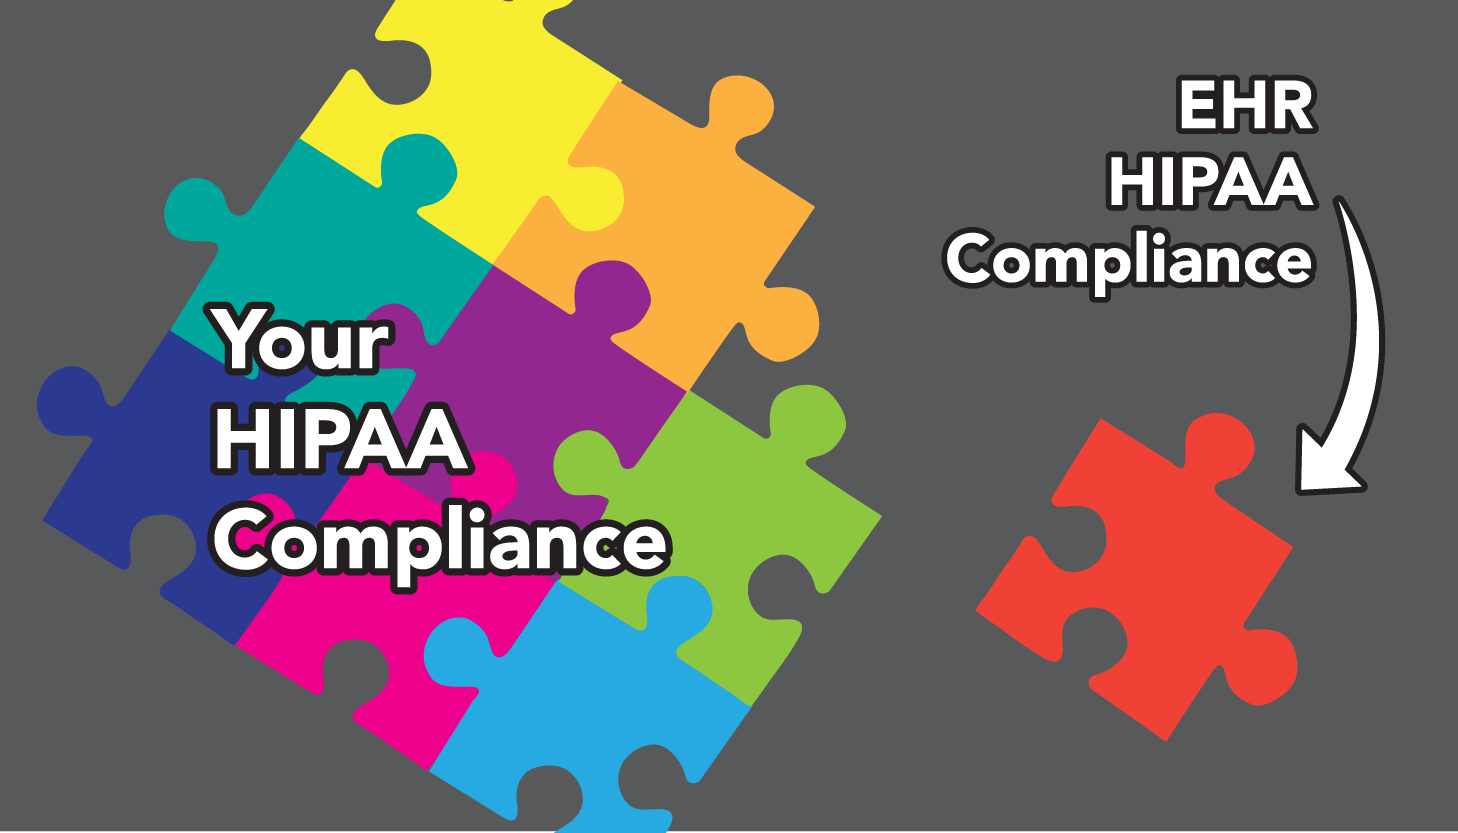 HIPAA Compliance and EHR Compliance Aren't The Same Thing